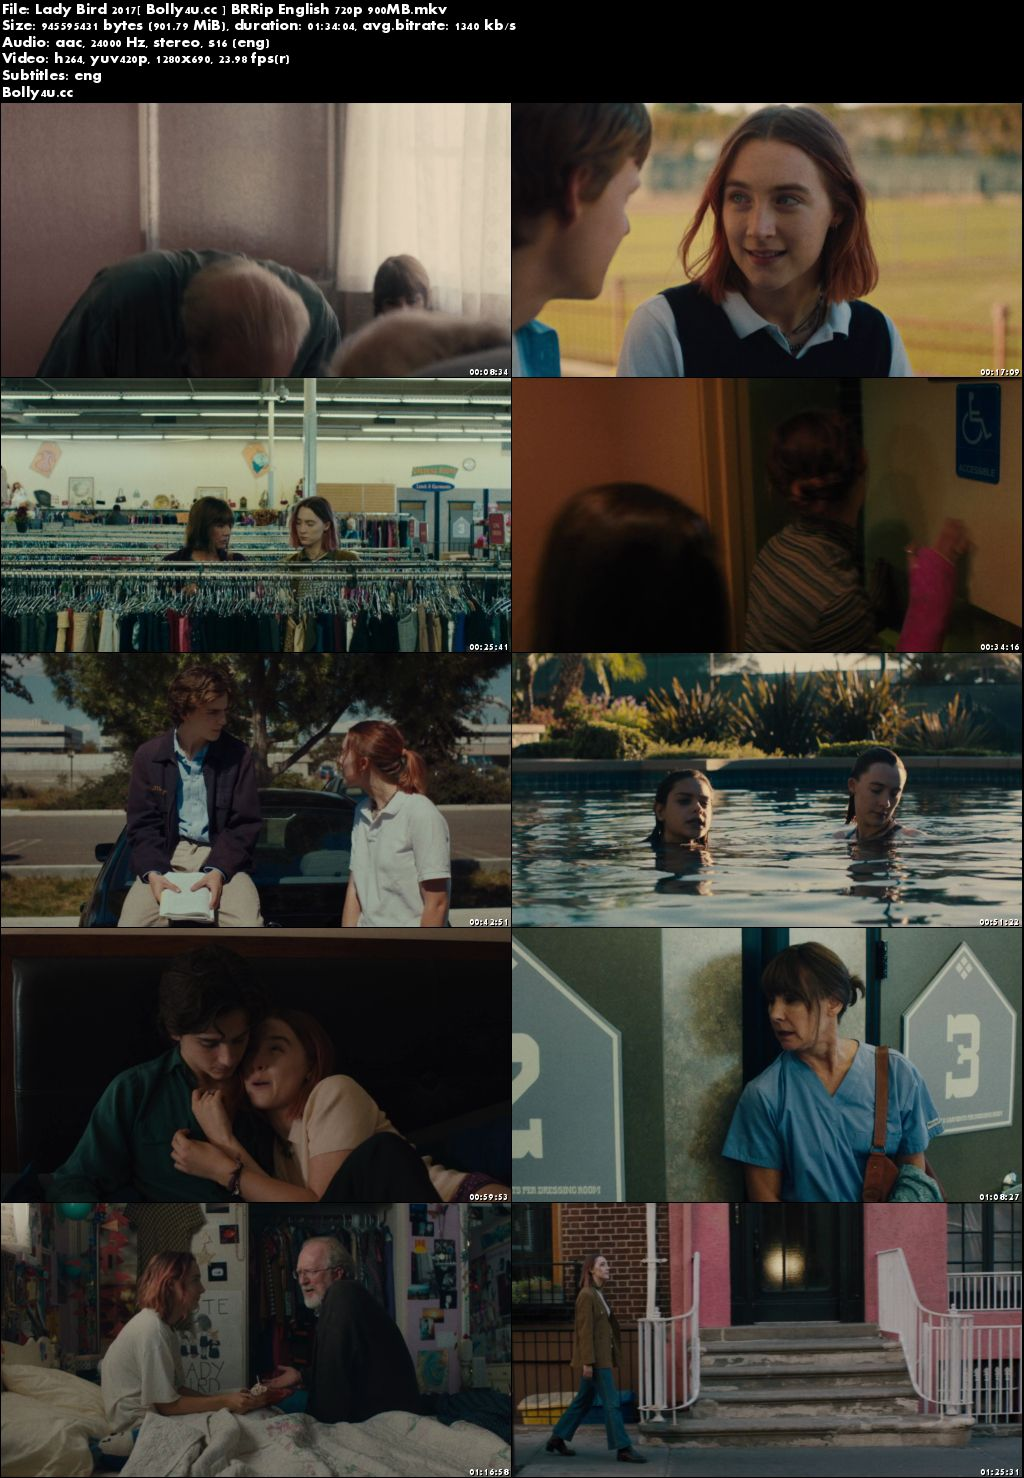 Lady Bird 2017 BRRip 900MB English 720p ESub Download